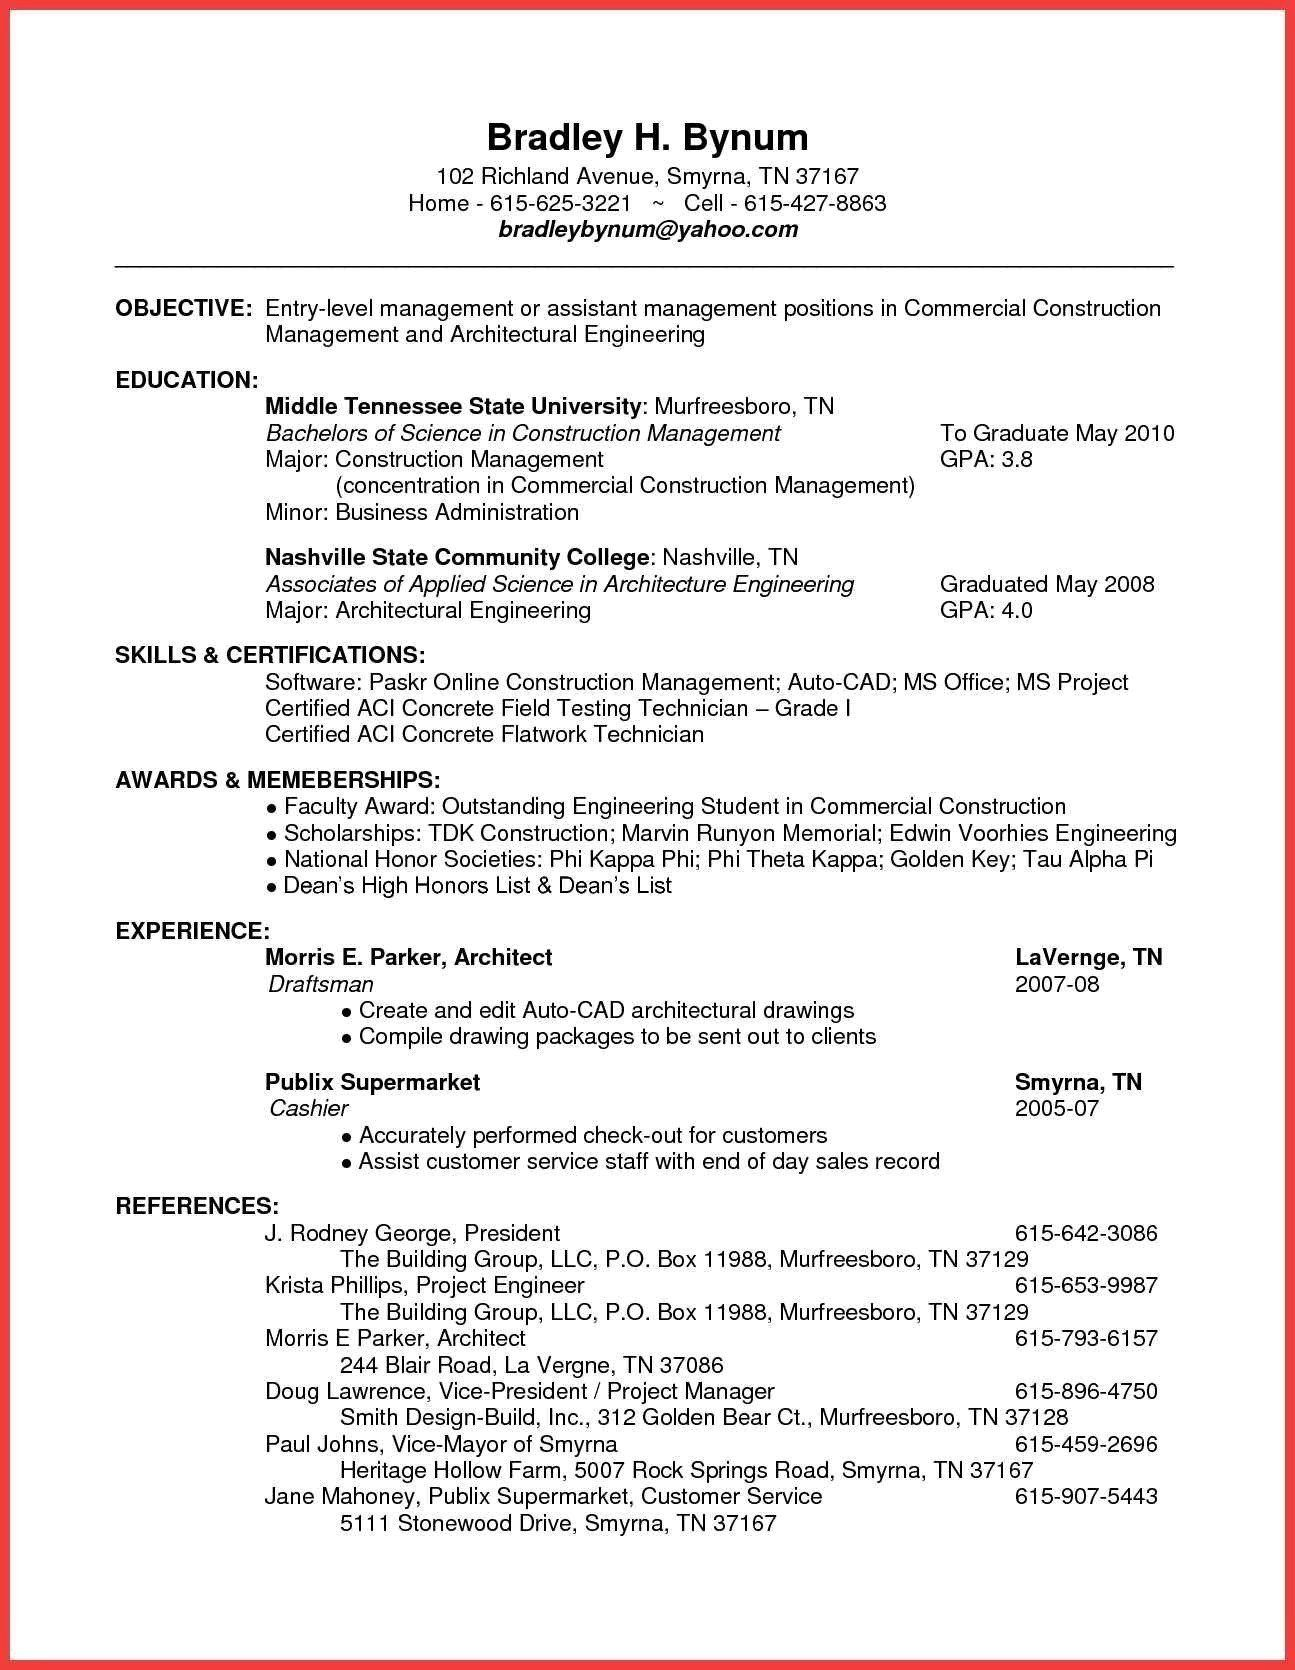 Sample Resume For Community College Teaching Position Luxury Resume Description For Cashier Templates A Supermarket